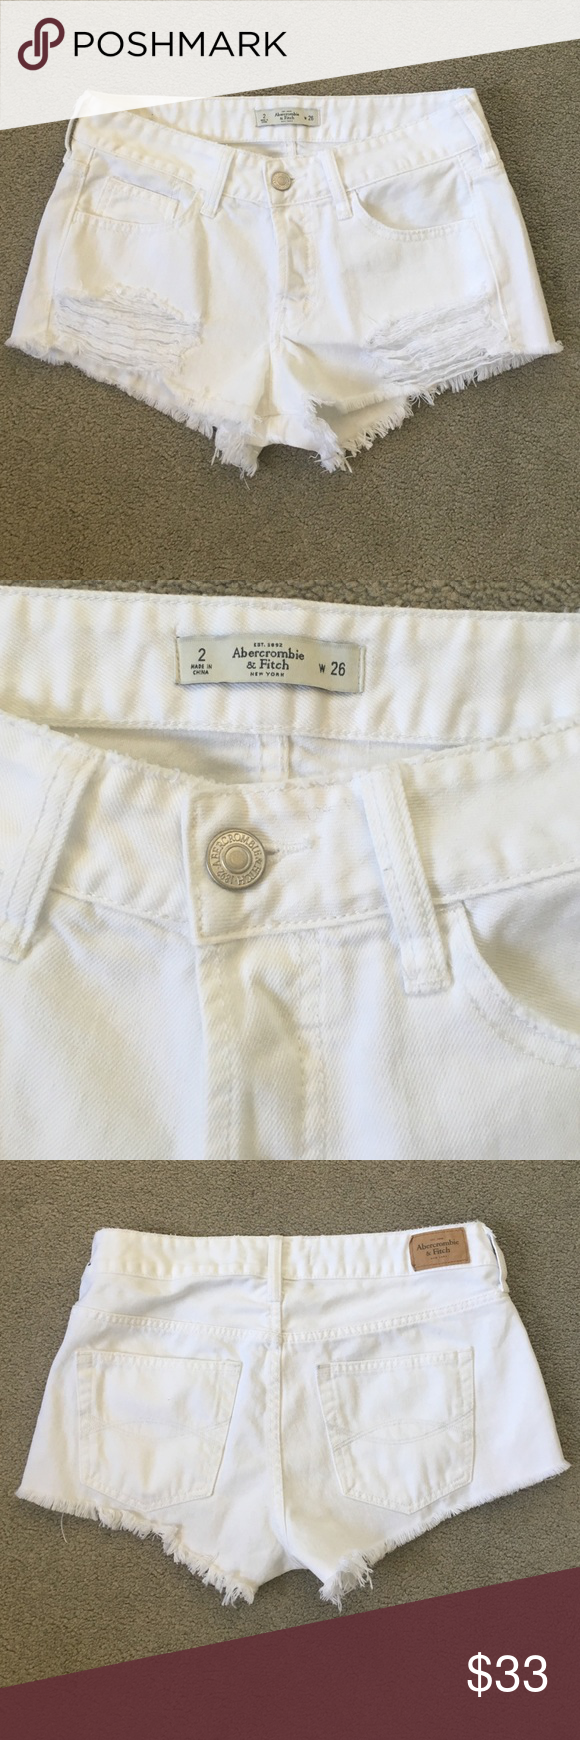 NWOT A&F Hight Waist Short Size 2 NWOT No trade No model Abercrombie & Fitch Shorts Jean Shorts